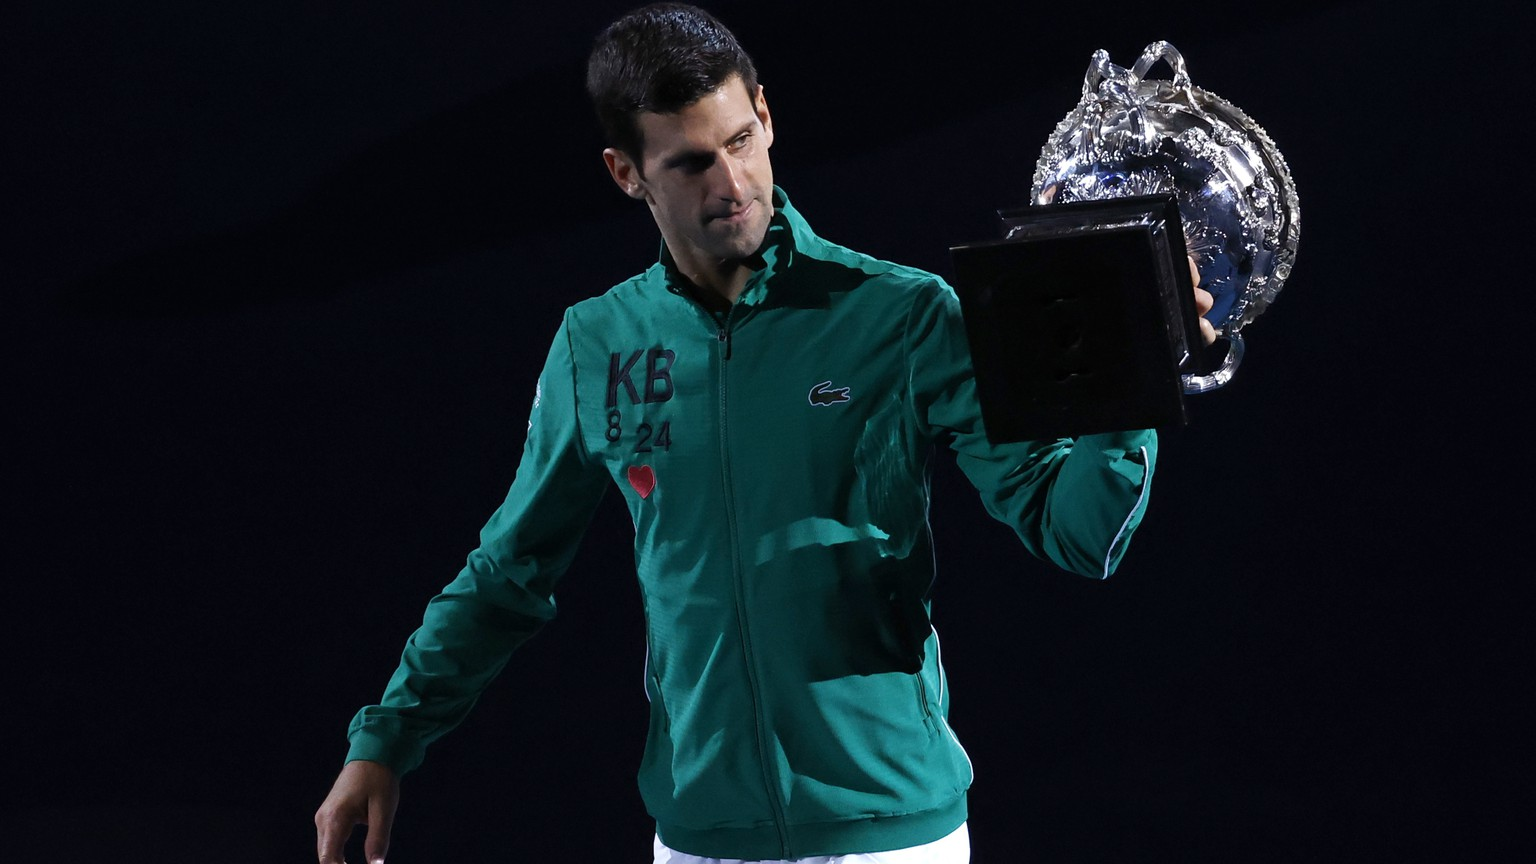 Serbia's Novak Djokovic carries the Norman Brookes Challenge Cup around Rod Laver Arena after defeating Austria's Dominic Thiem in the men's singles final of the Australian Open tennis championship in Melbourne, Australia, early Monday, Feb. 3, 2020. (AP Photo/Dita Alangkara) Novak Djokovic